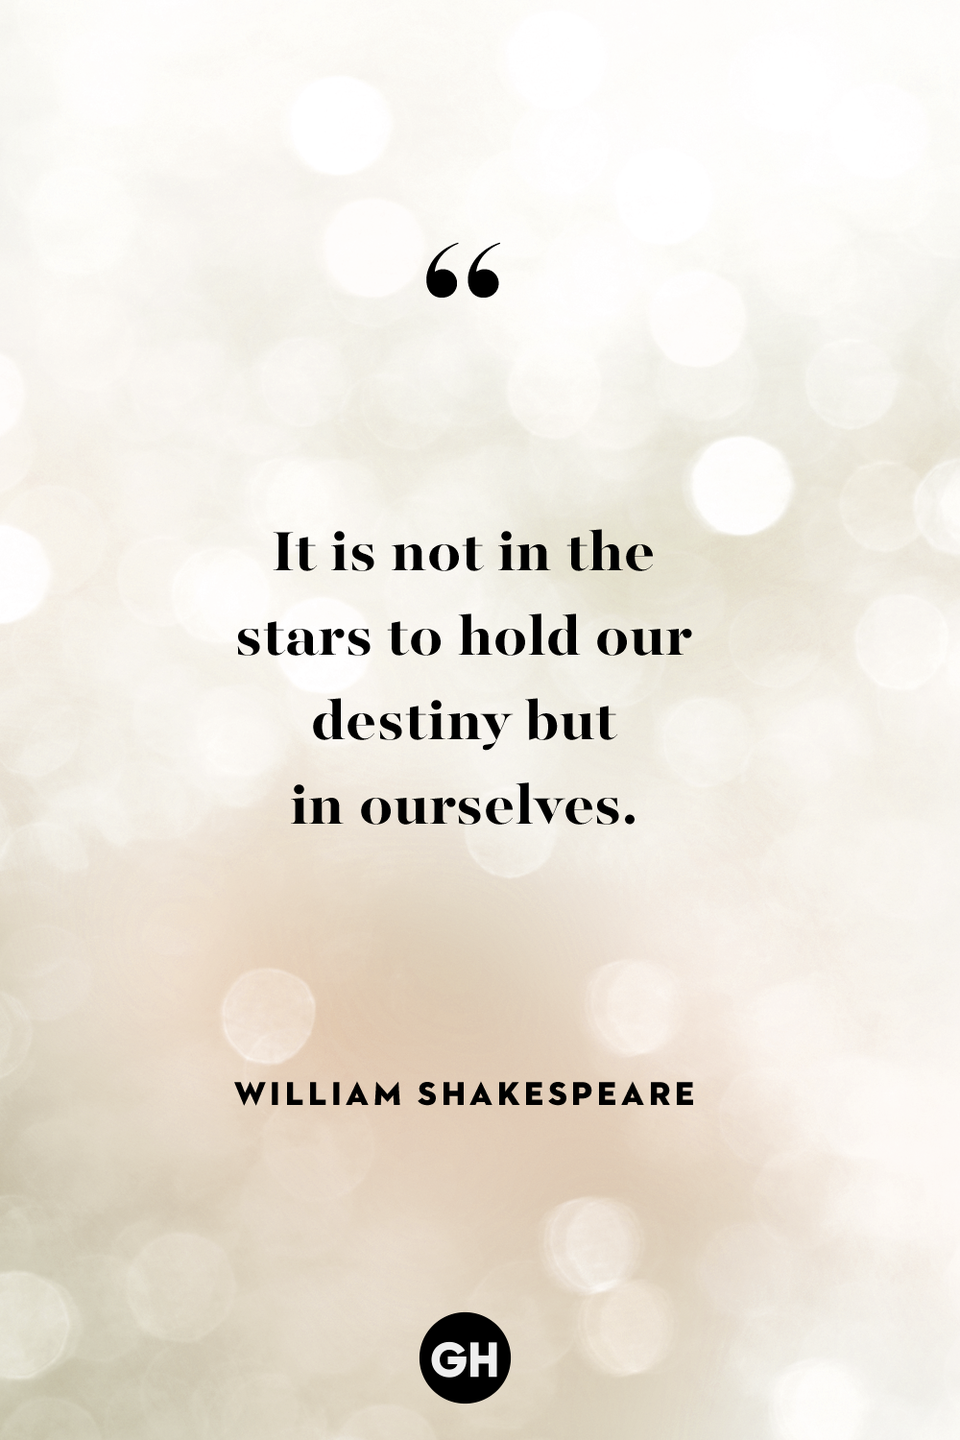 <p>It is not in the stars to hold our destiny but in ourselves.</p>